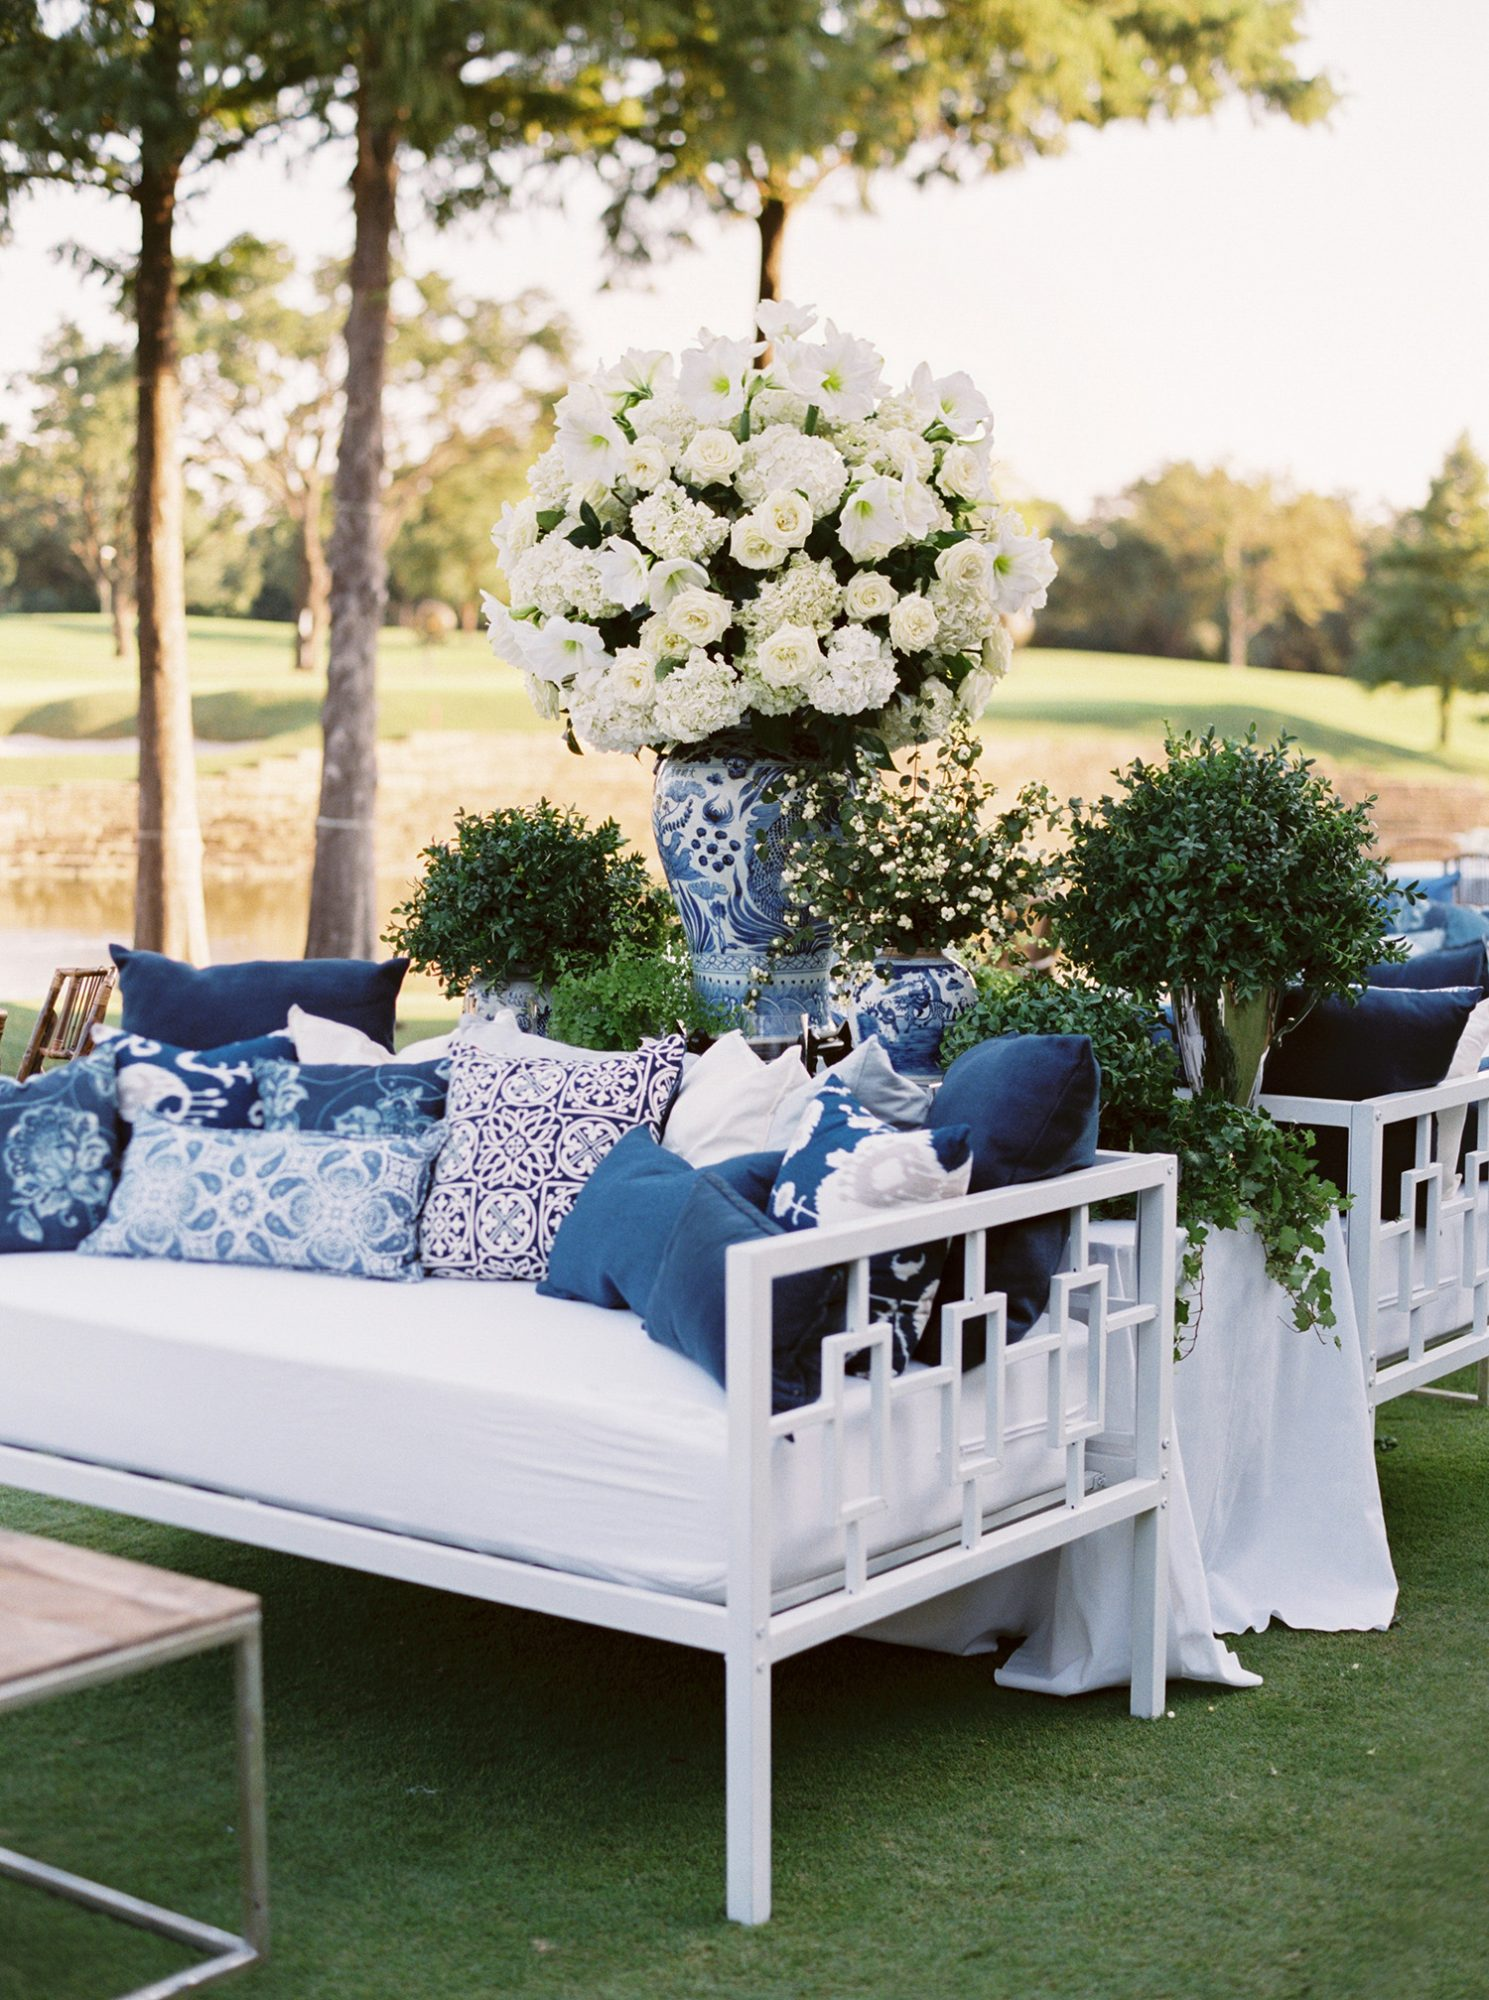 wedding lounge white couches with blue pillows outdoors